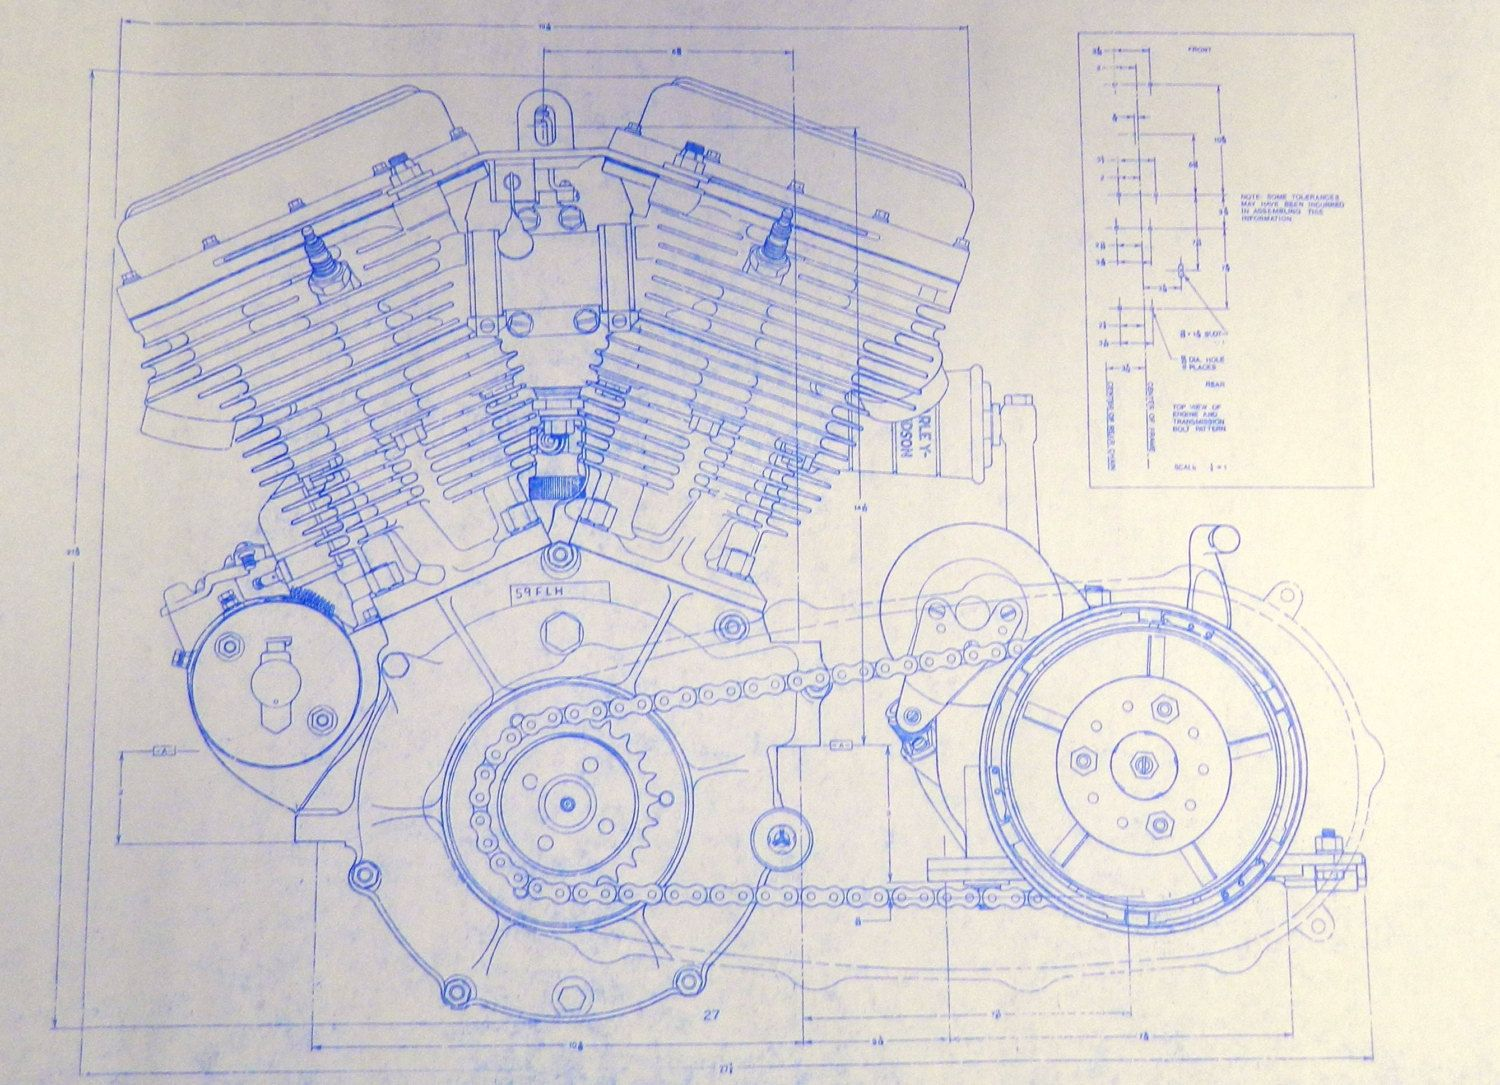 E F A F D B Ca D Fb Cba on Knucklehead Engine Drawings